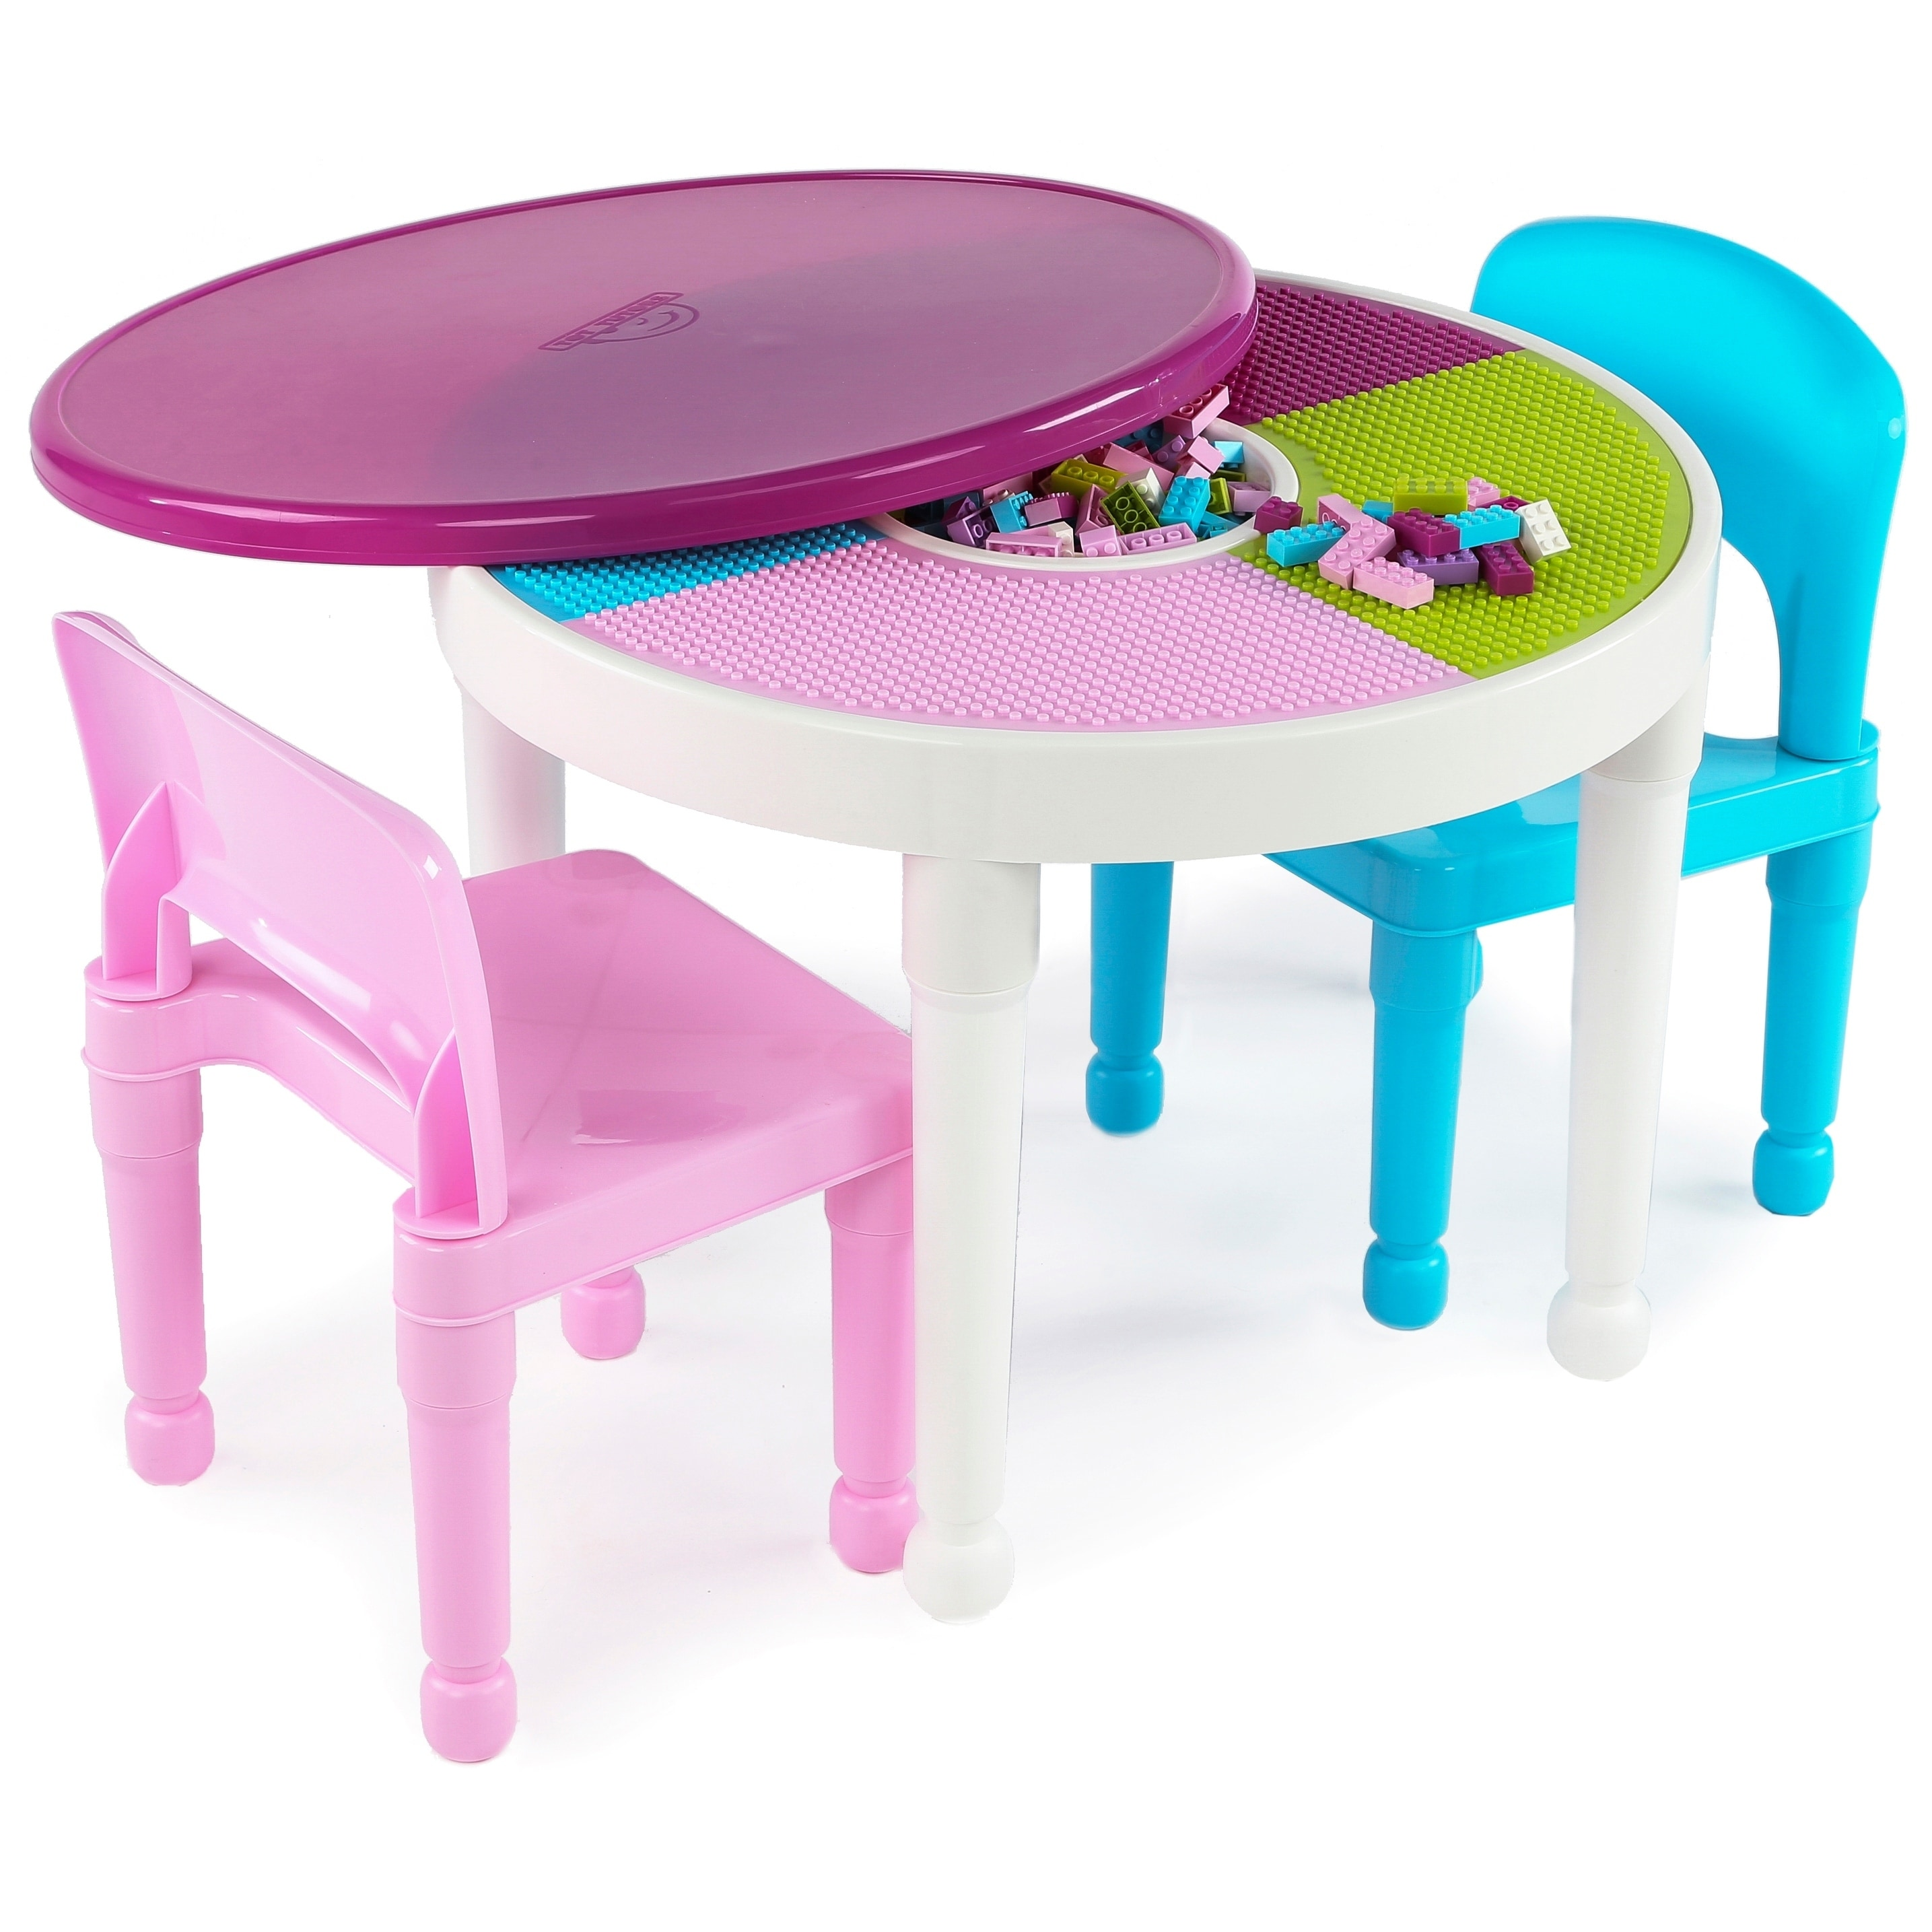 Lego Kids 2-in-1 Plastic Activity Table & 2 Chairs Set, W...